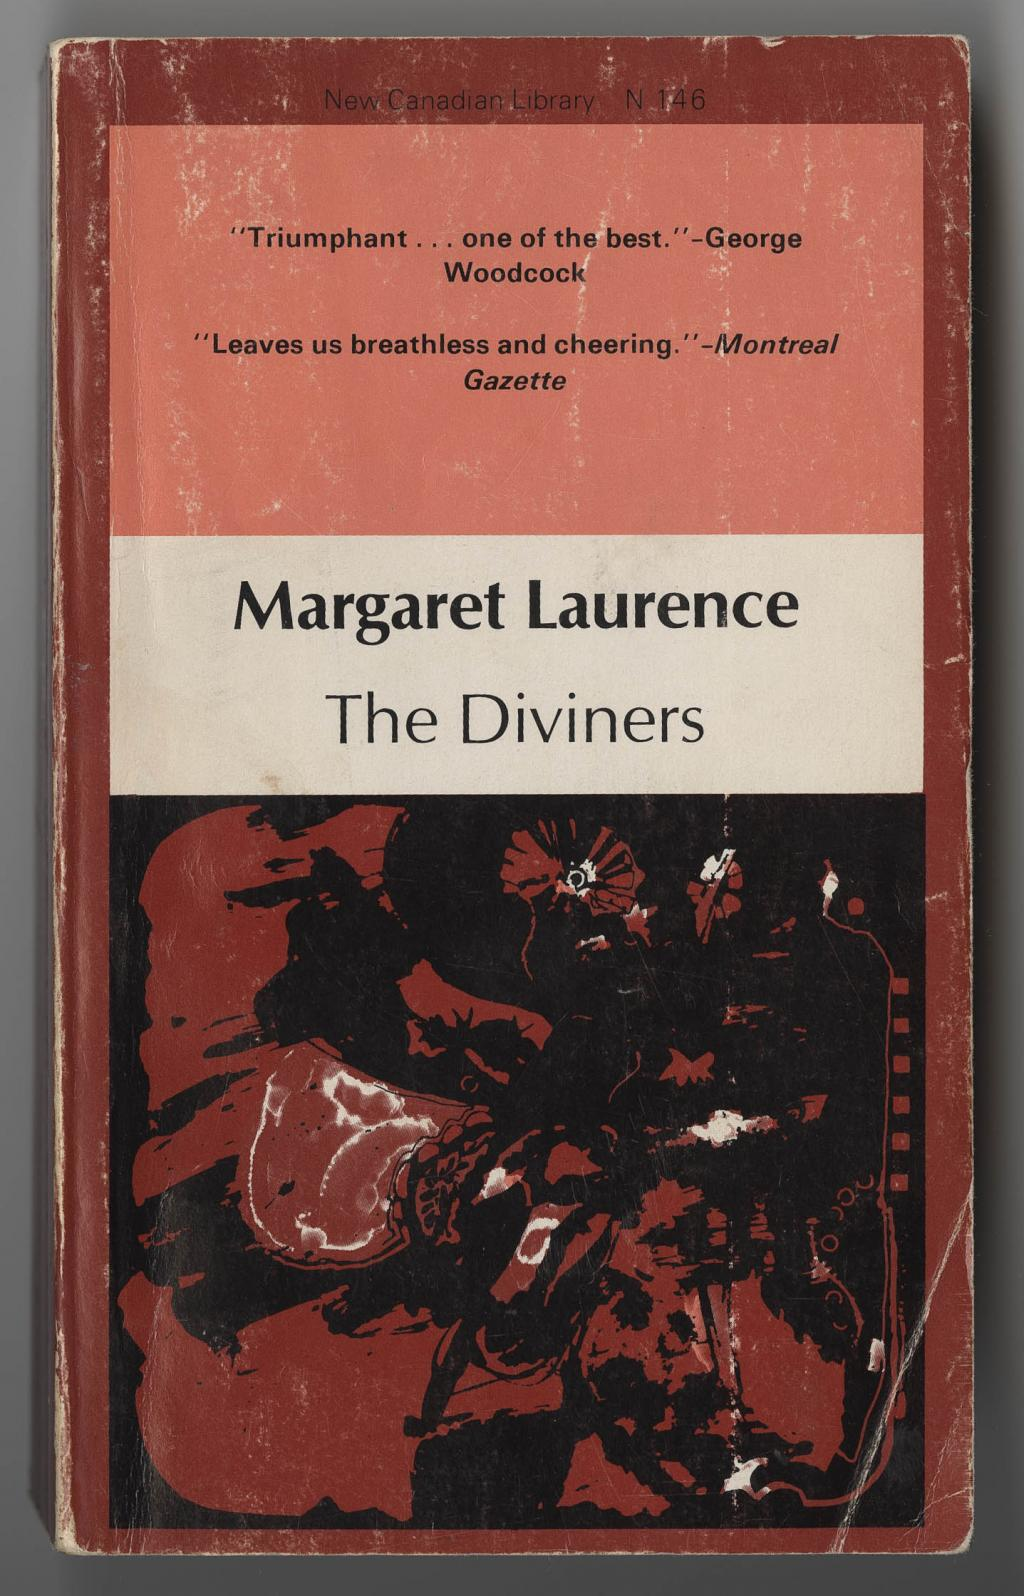 feminism in margaret laurences the diviners Margaret laurence // bookmarks (15460657)may/jun2014, issue 70, p25 the article presents a brief career profile of late canadian novelist, margaret laurence, and highlights some of her works including the stone angel, and the diviners anti-imperialism and feminism in margaret laurence's african writings.